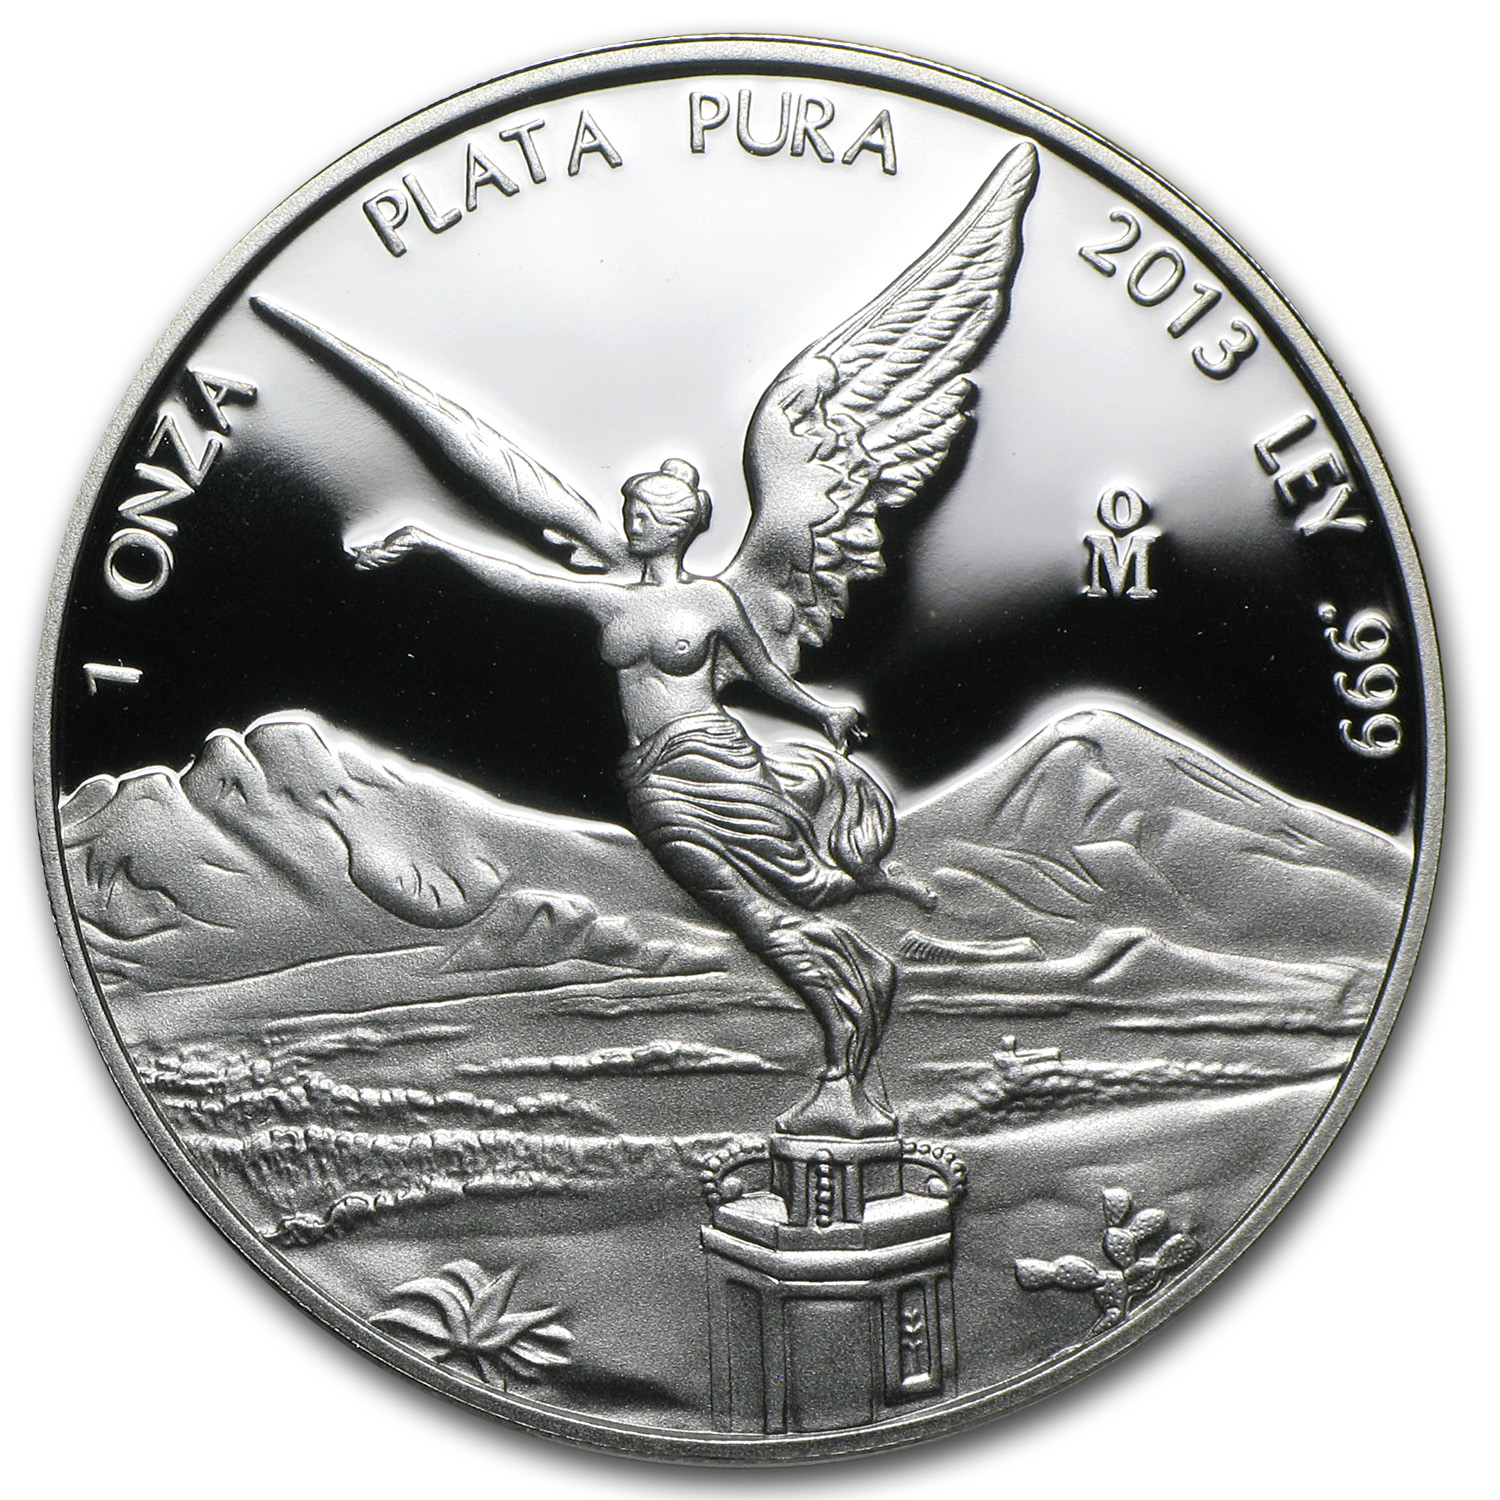 2013 1 oz Silver Mexican Libertad - Proof (In Capsule)